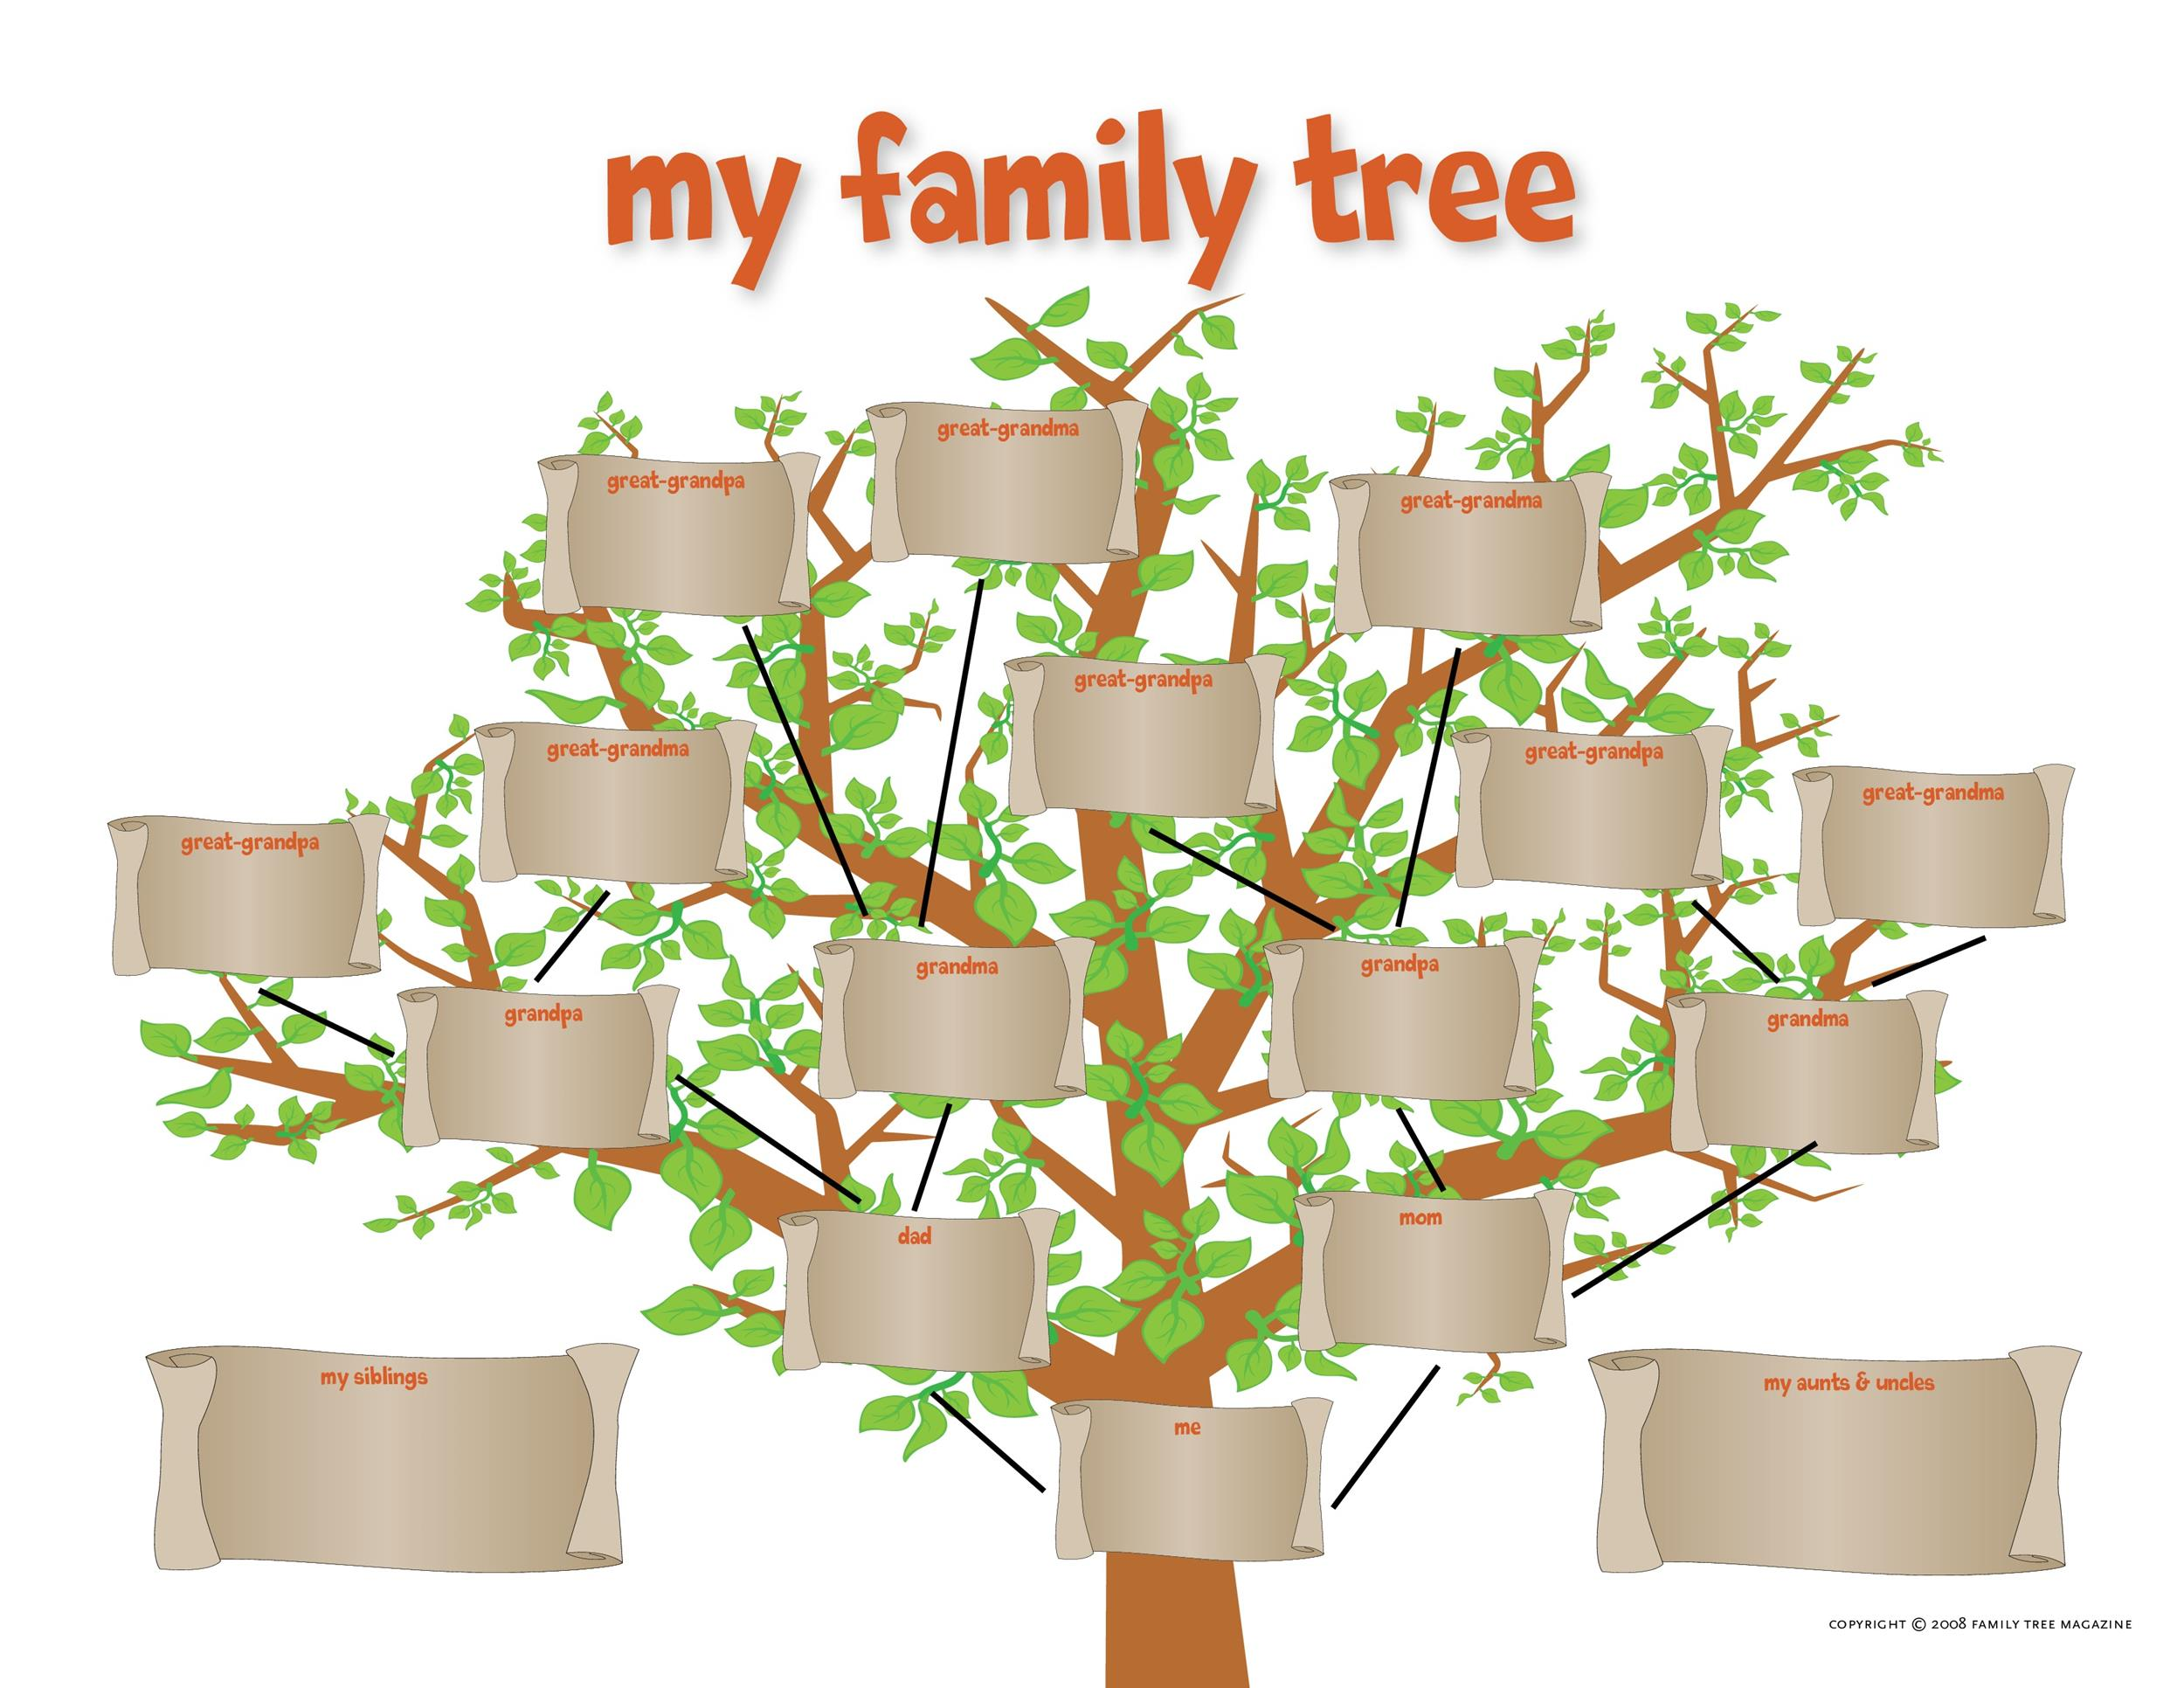 50+ Free Family Tree Templates (Word, Excel, PDF) ᐅ Template Lab